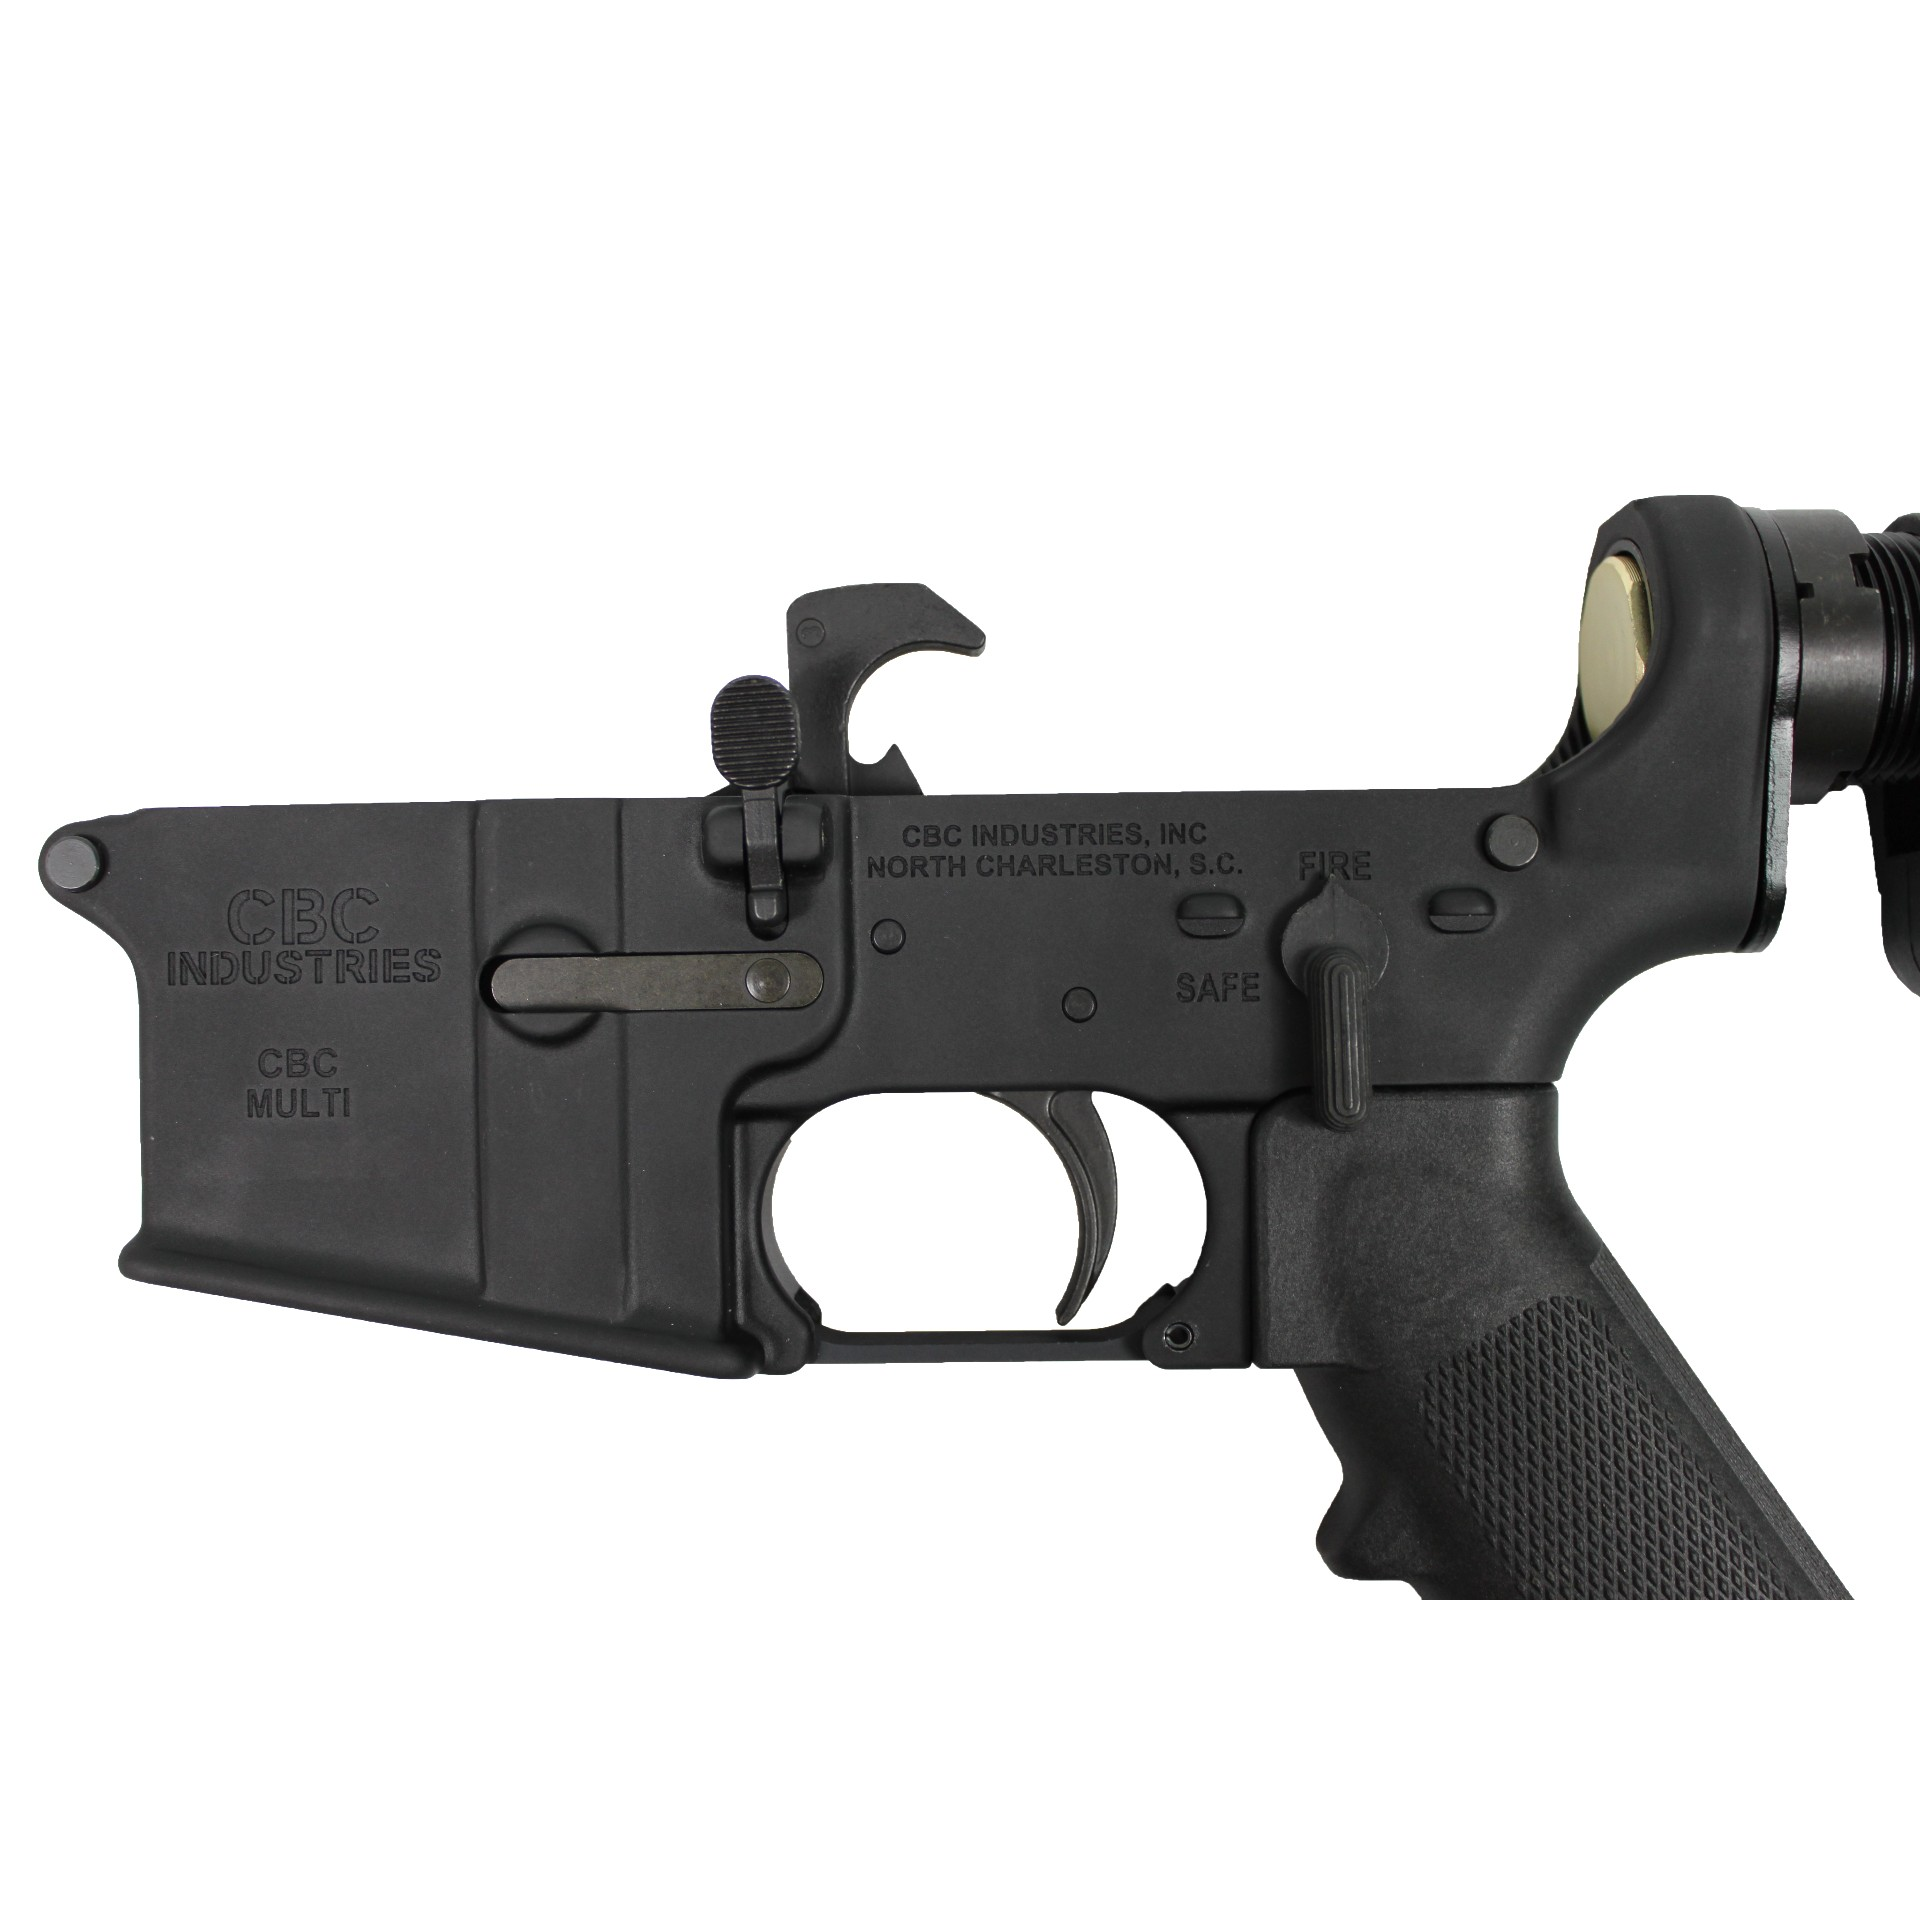 AR-15 Lower - CBC Industries Complete Lower / Grip / Adjustable Buttstock